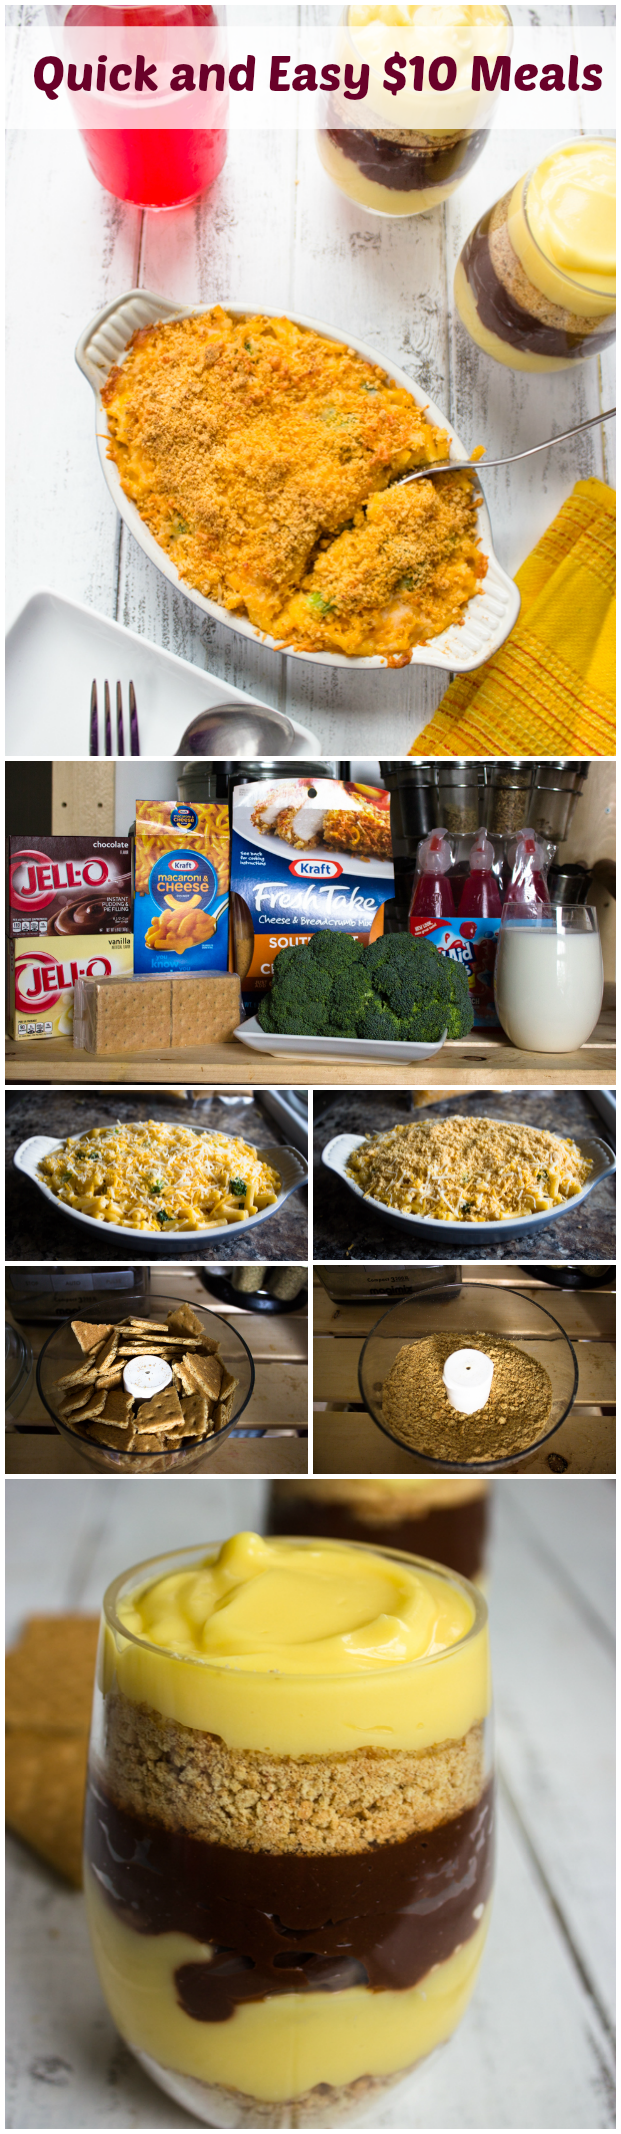 Quick and Easy Meal Ideas Under $10